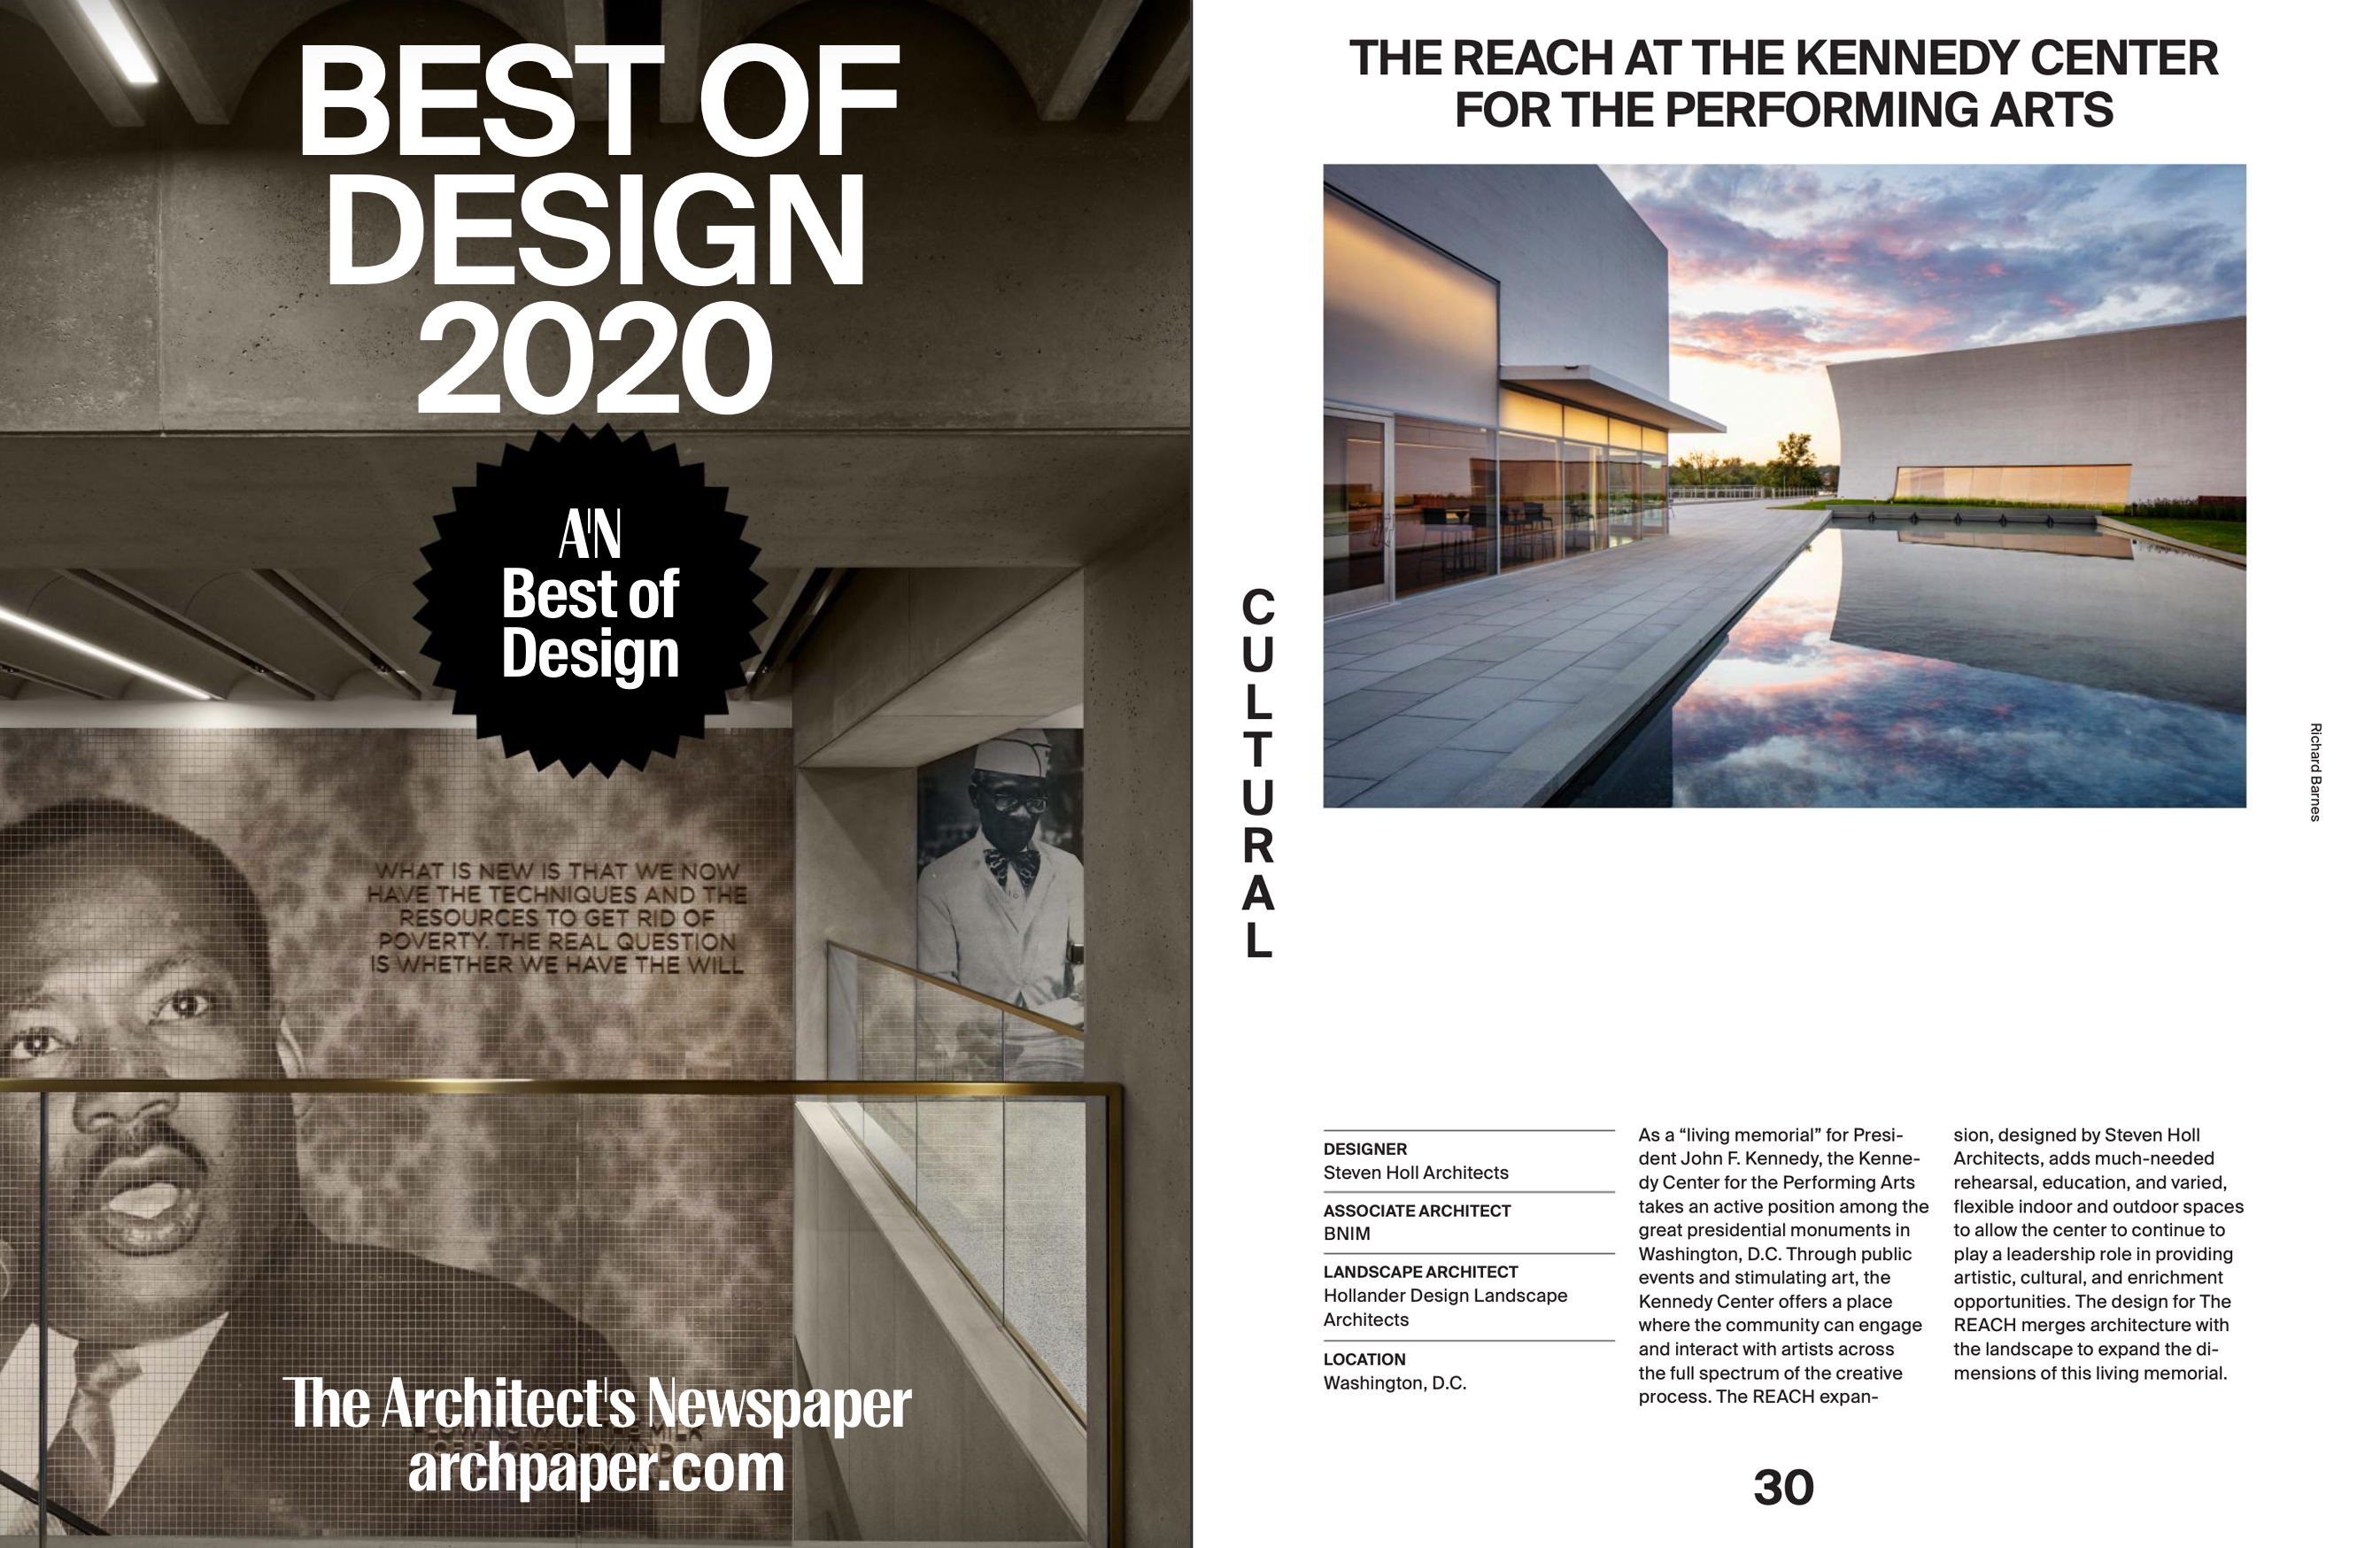 The REACH is among AN's Best of Design Awards of 2020